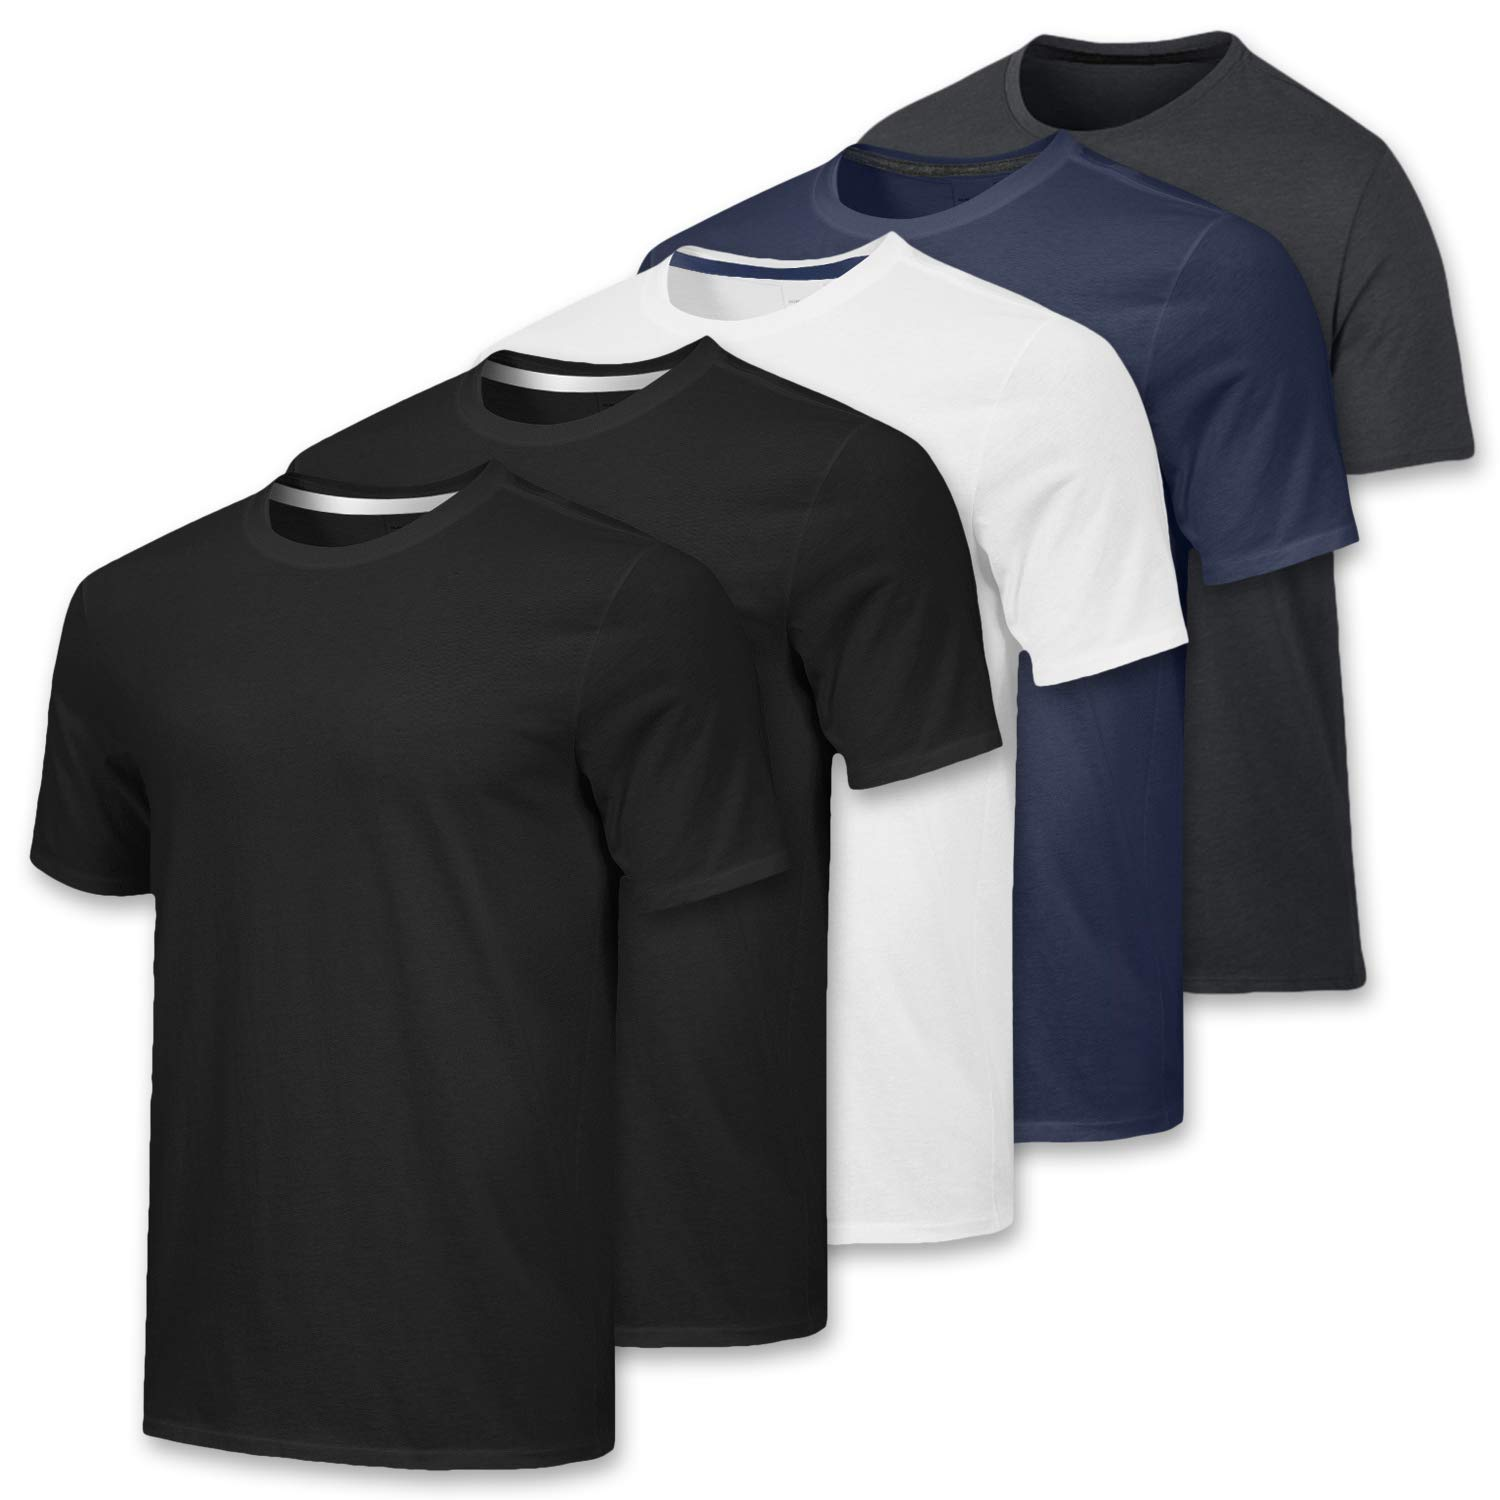 65fa3538875 5 Pack: Men's Dry-Fit Moisture Wicking Active Athletic Performance Crew  T-Shirt